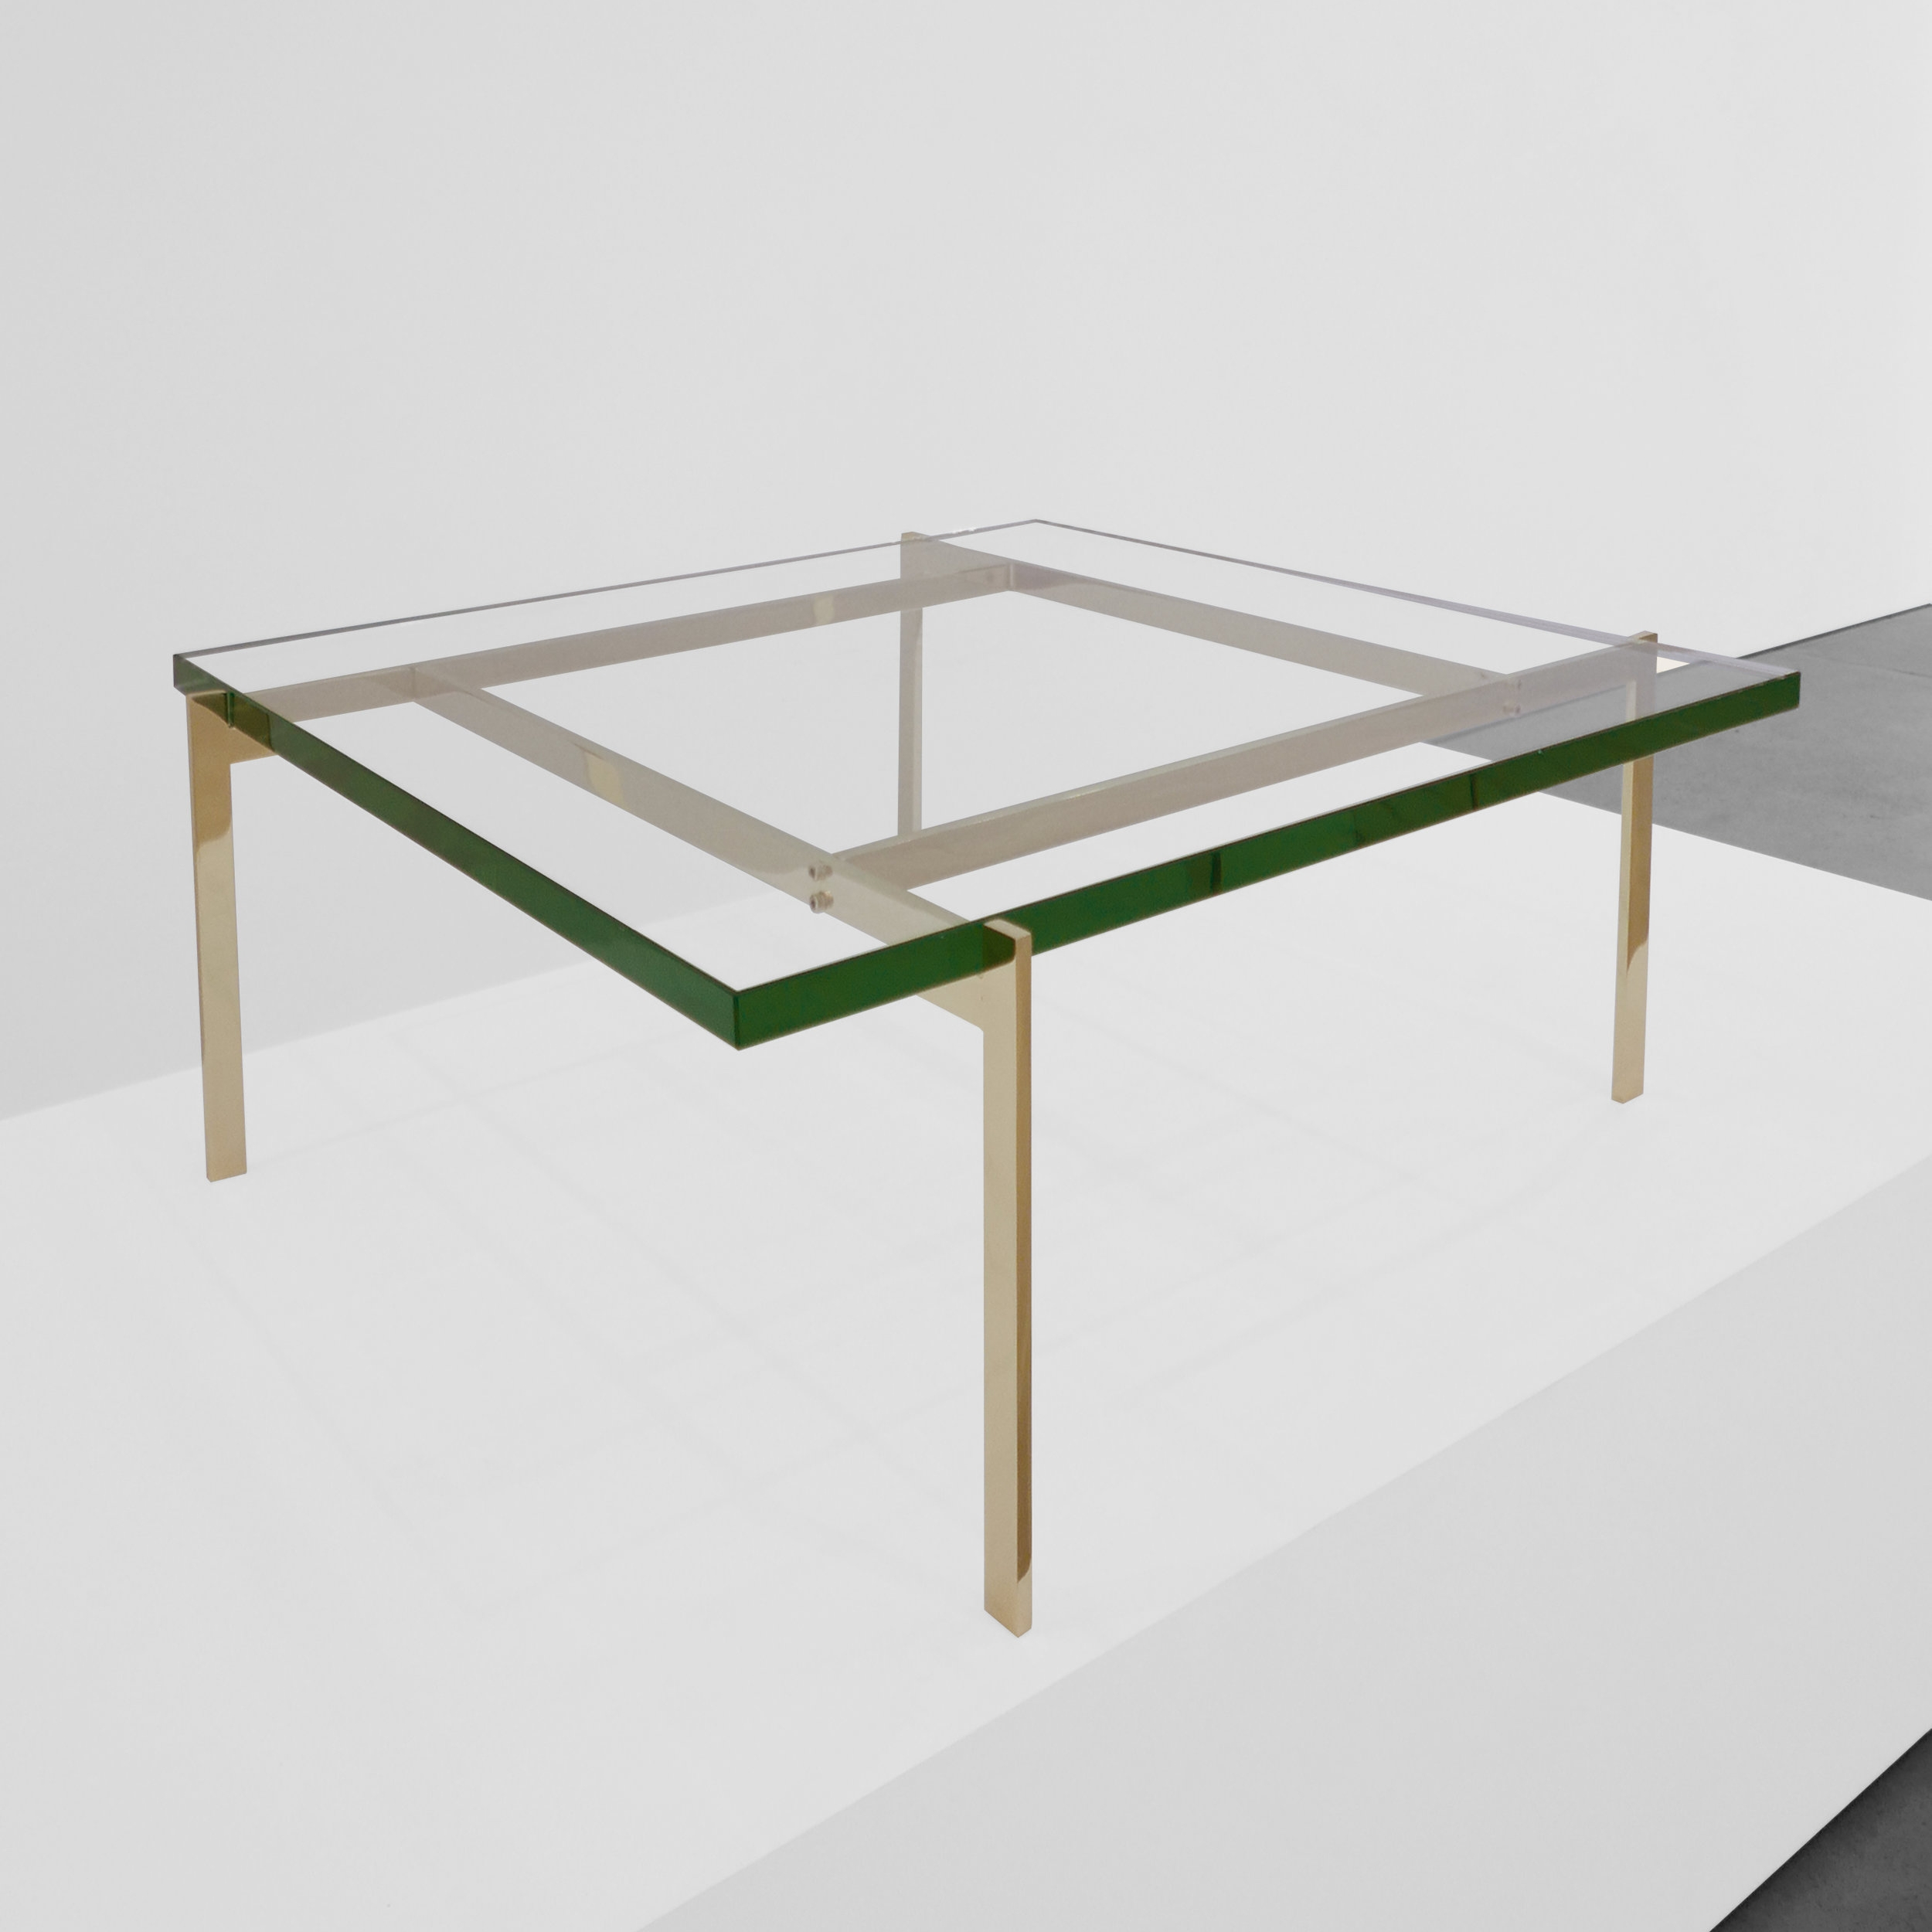 Poul kjaerholm  pk61 coffee table  c. 1950 -1959 ...